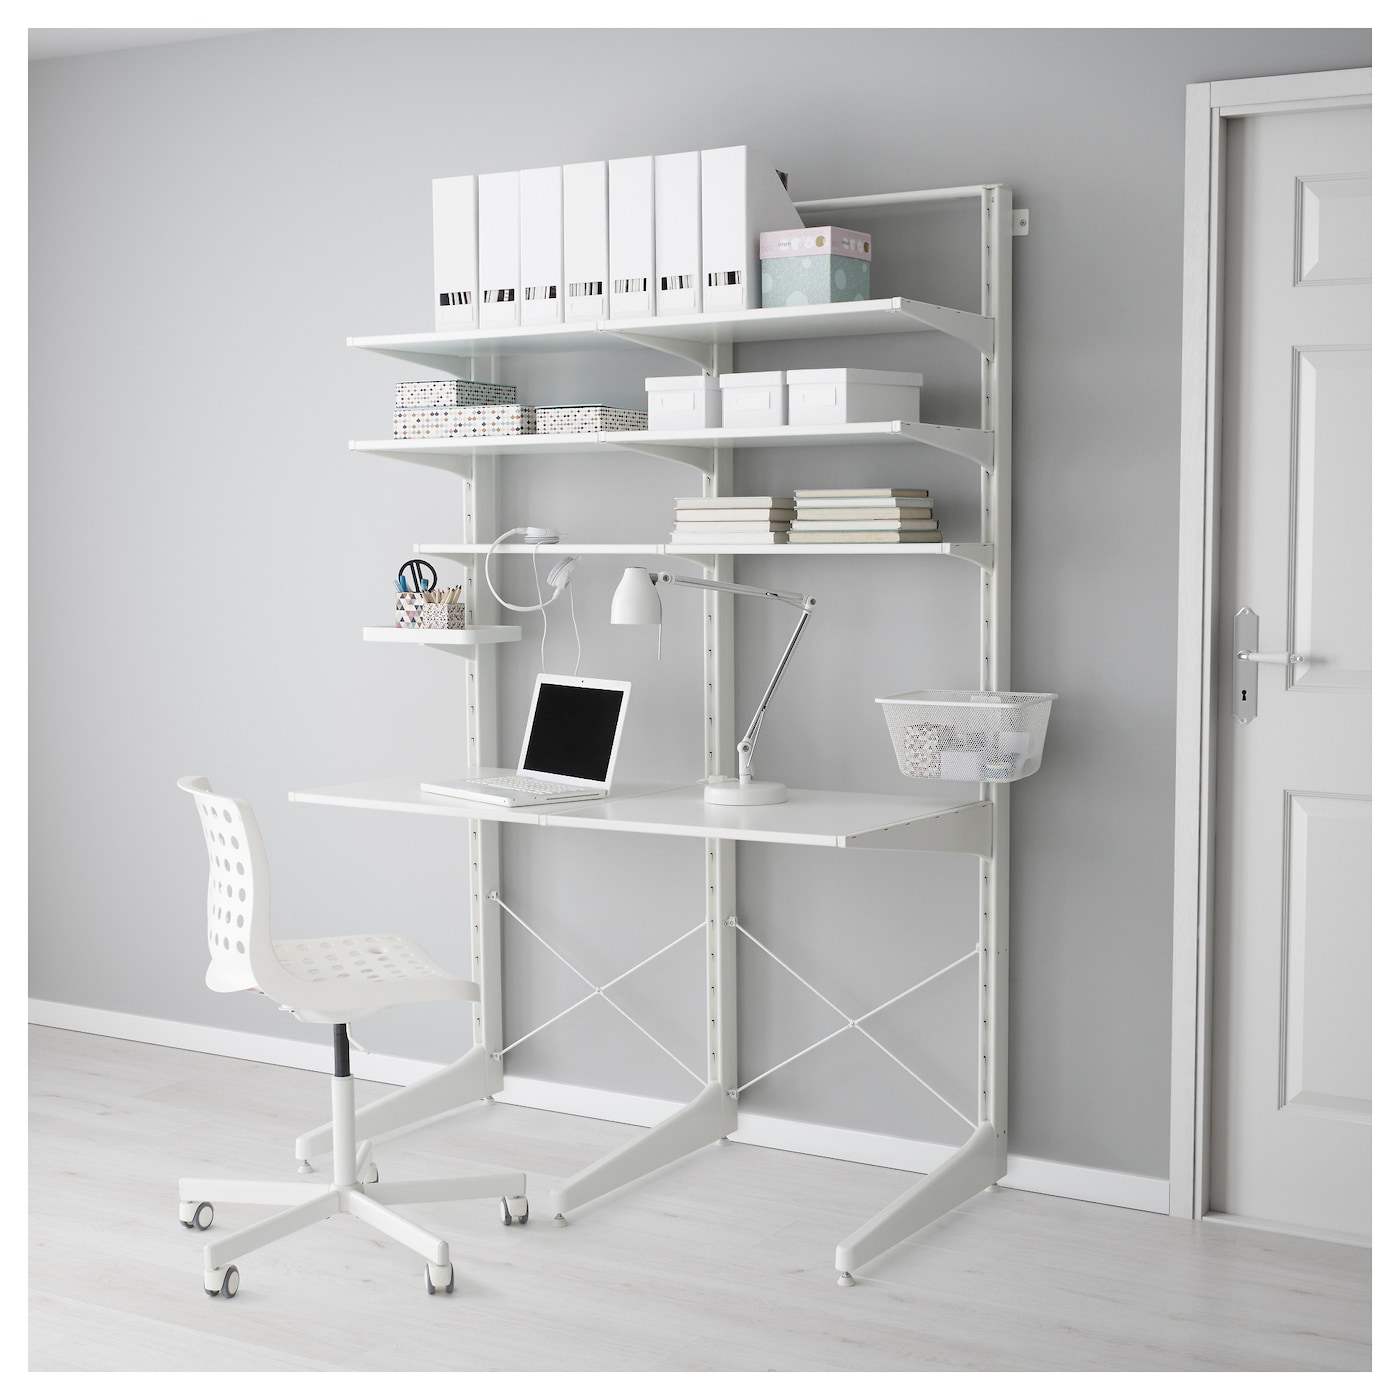 IKEA ALGOT post/foot/shelves Can also be used in bathrooms and other damp areas indoors.